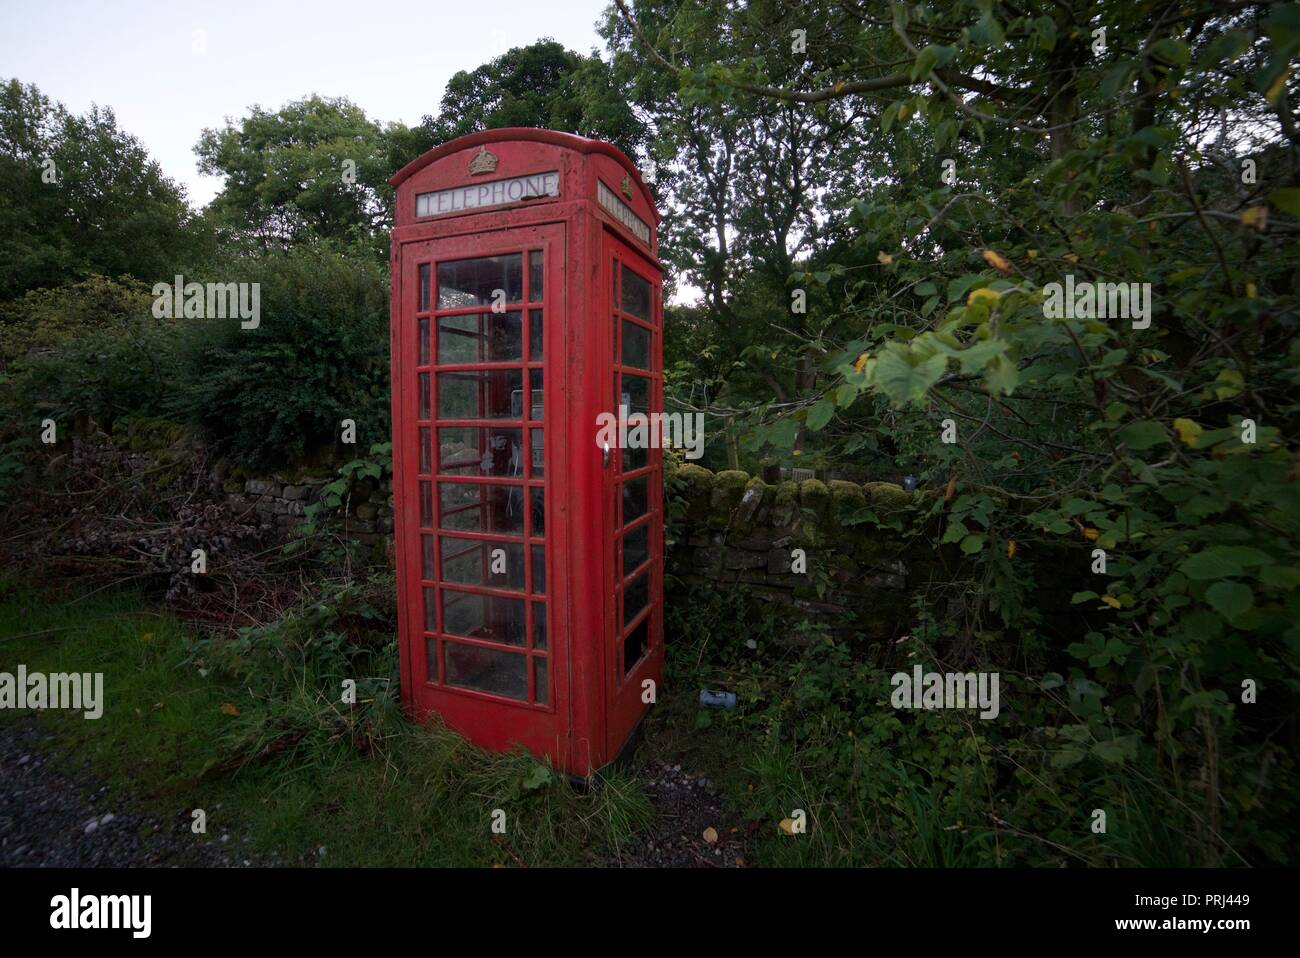 Red Telephone Box in the British Countryside - Stock Image